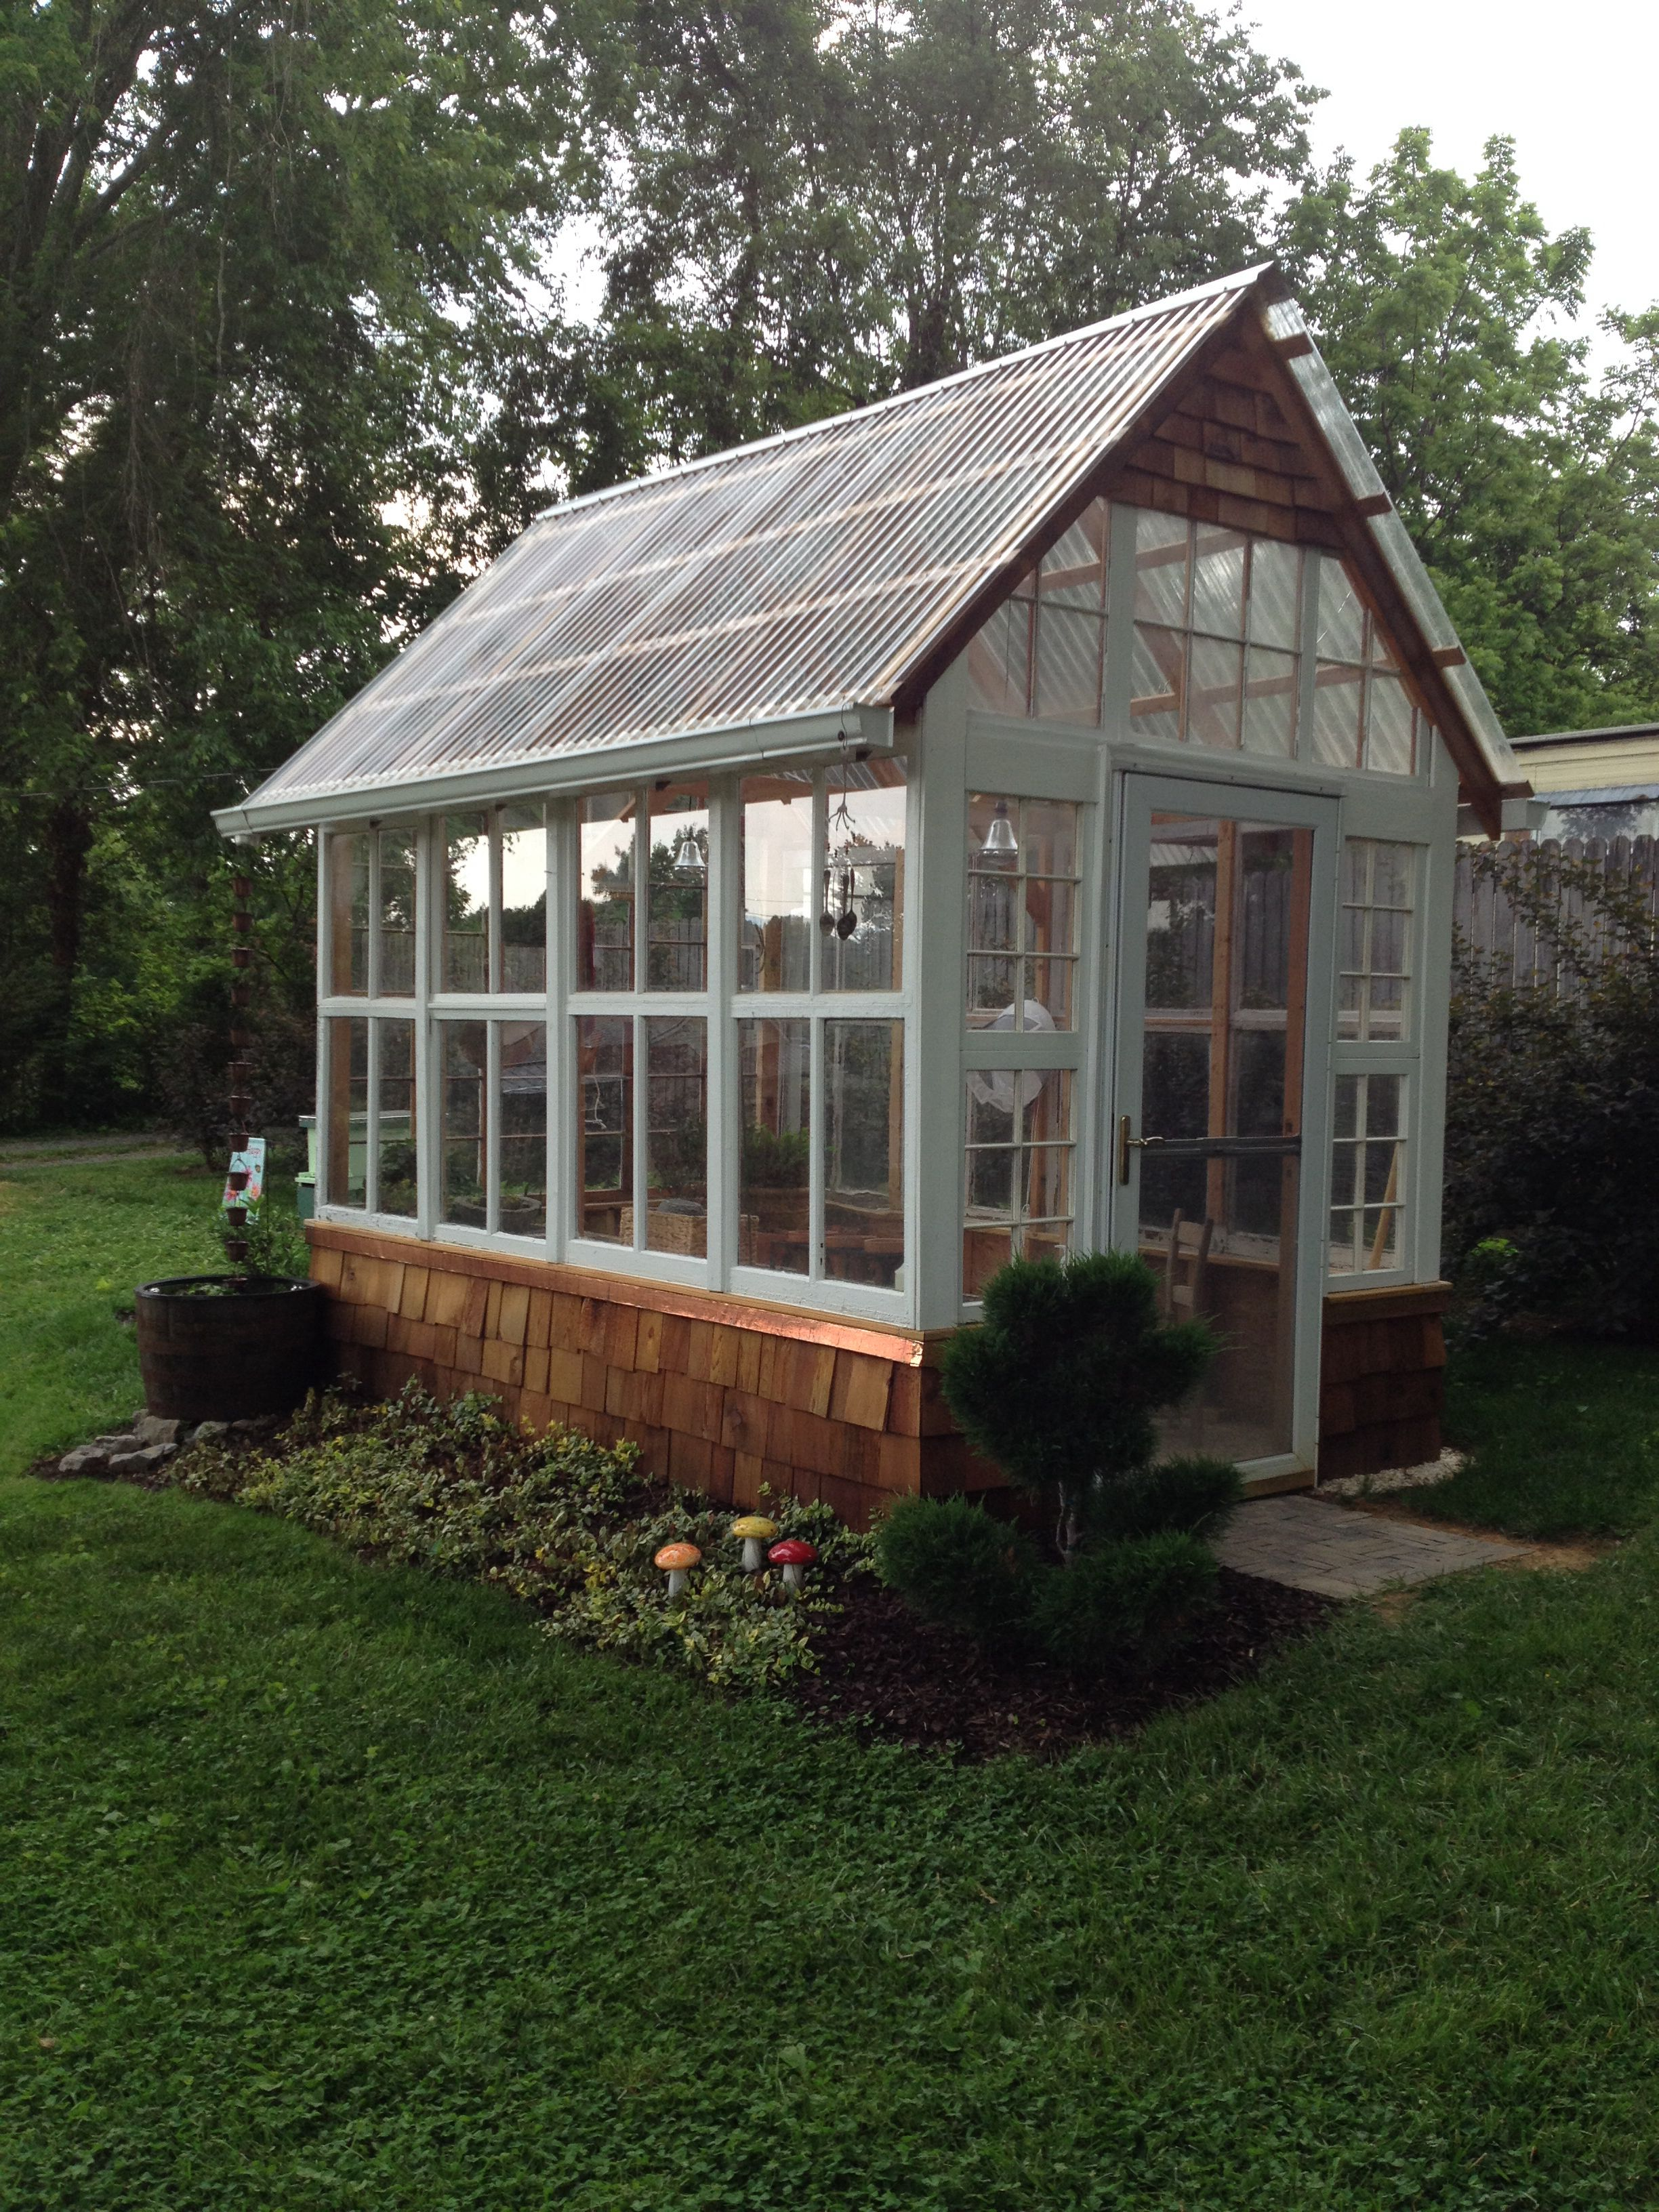 This Is A 7 X 12 Feet Greenhouse Made Out Of Old Windows, Polycarbonate  Plastic Roof Panels And Cedar Shakes. Itu0027s Tall Enough To Be A Great Art  Studio.